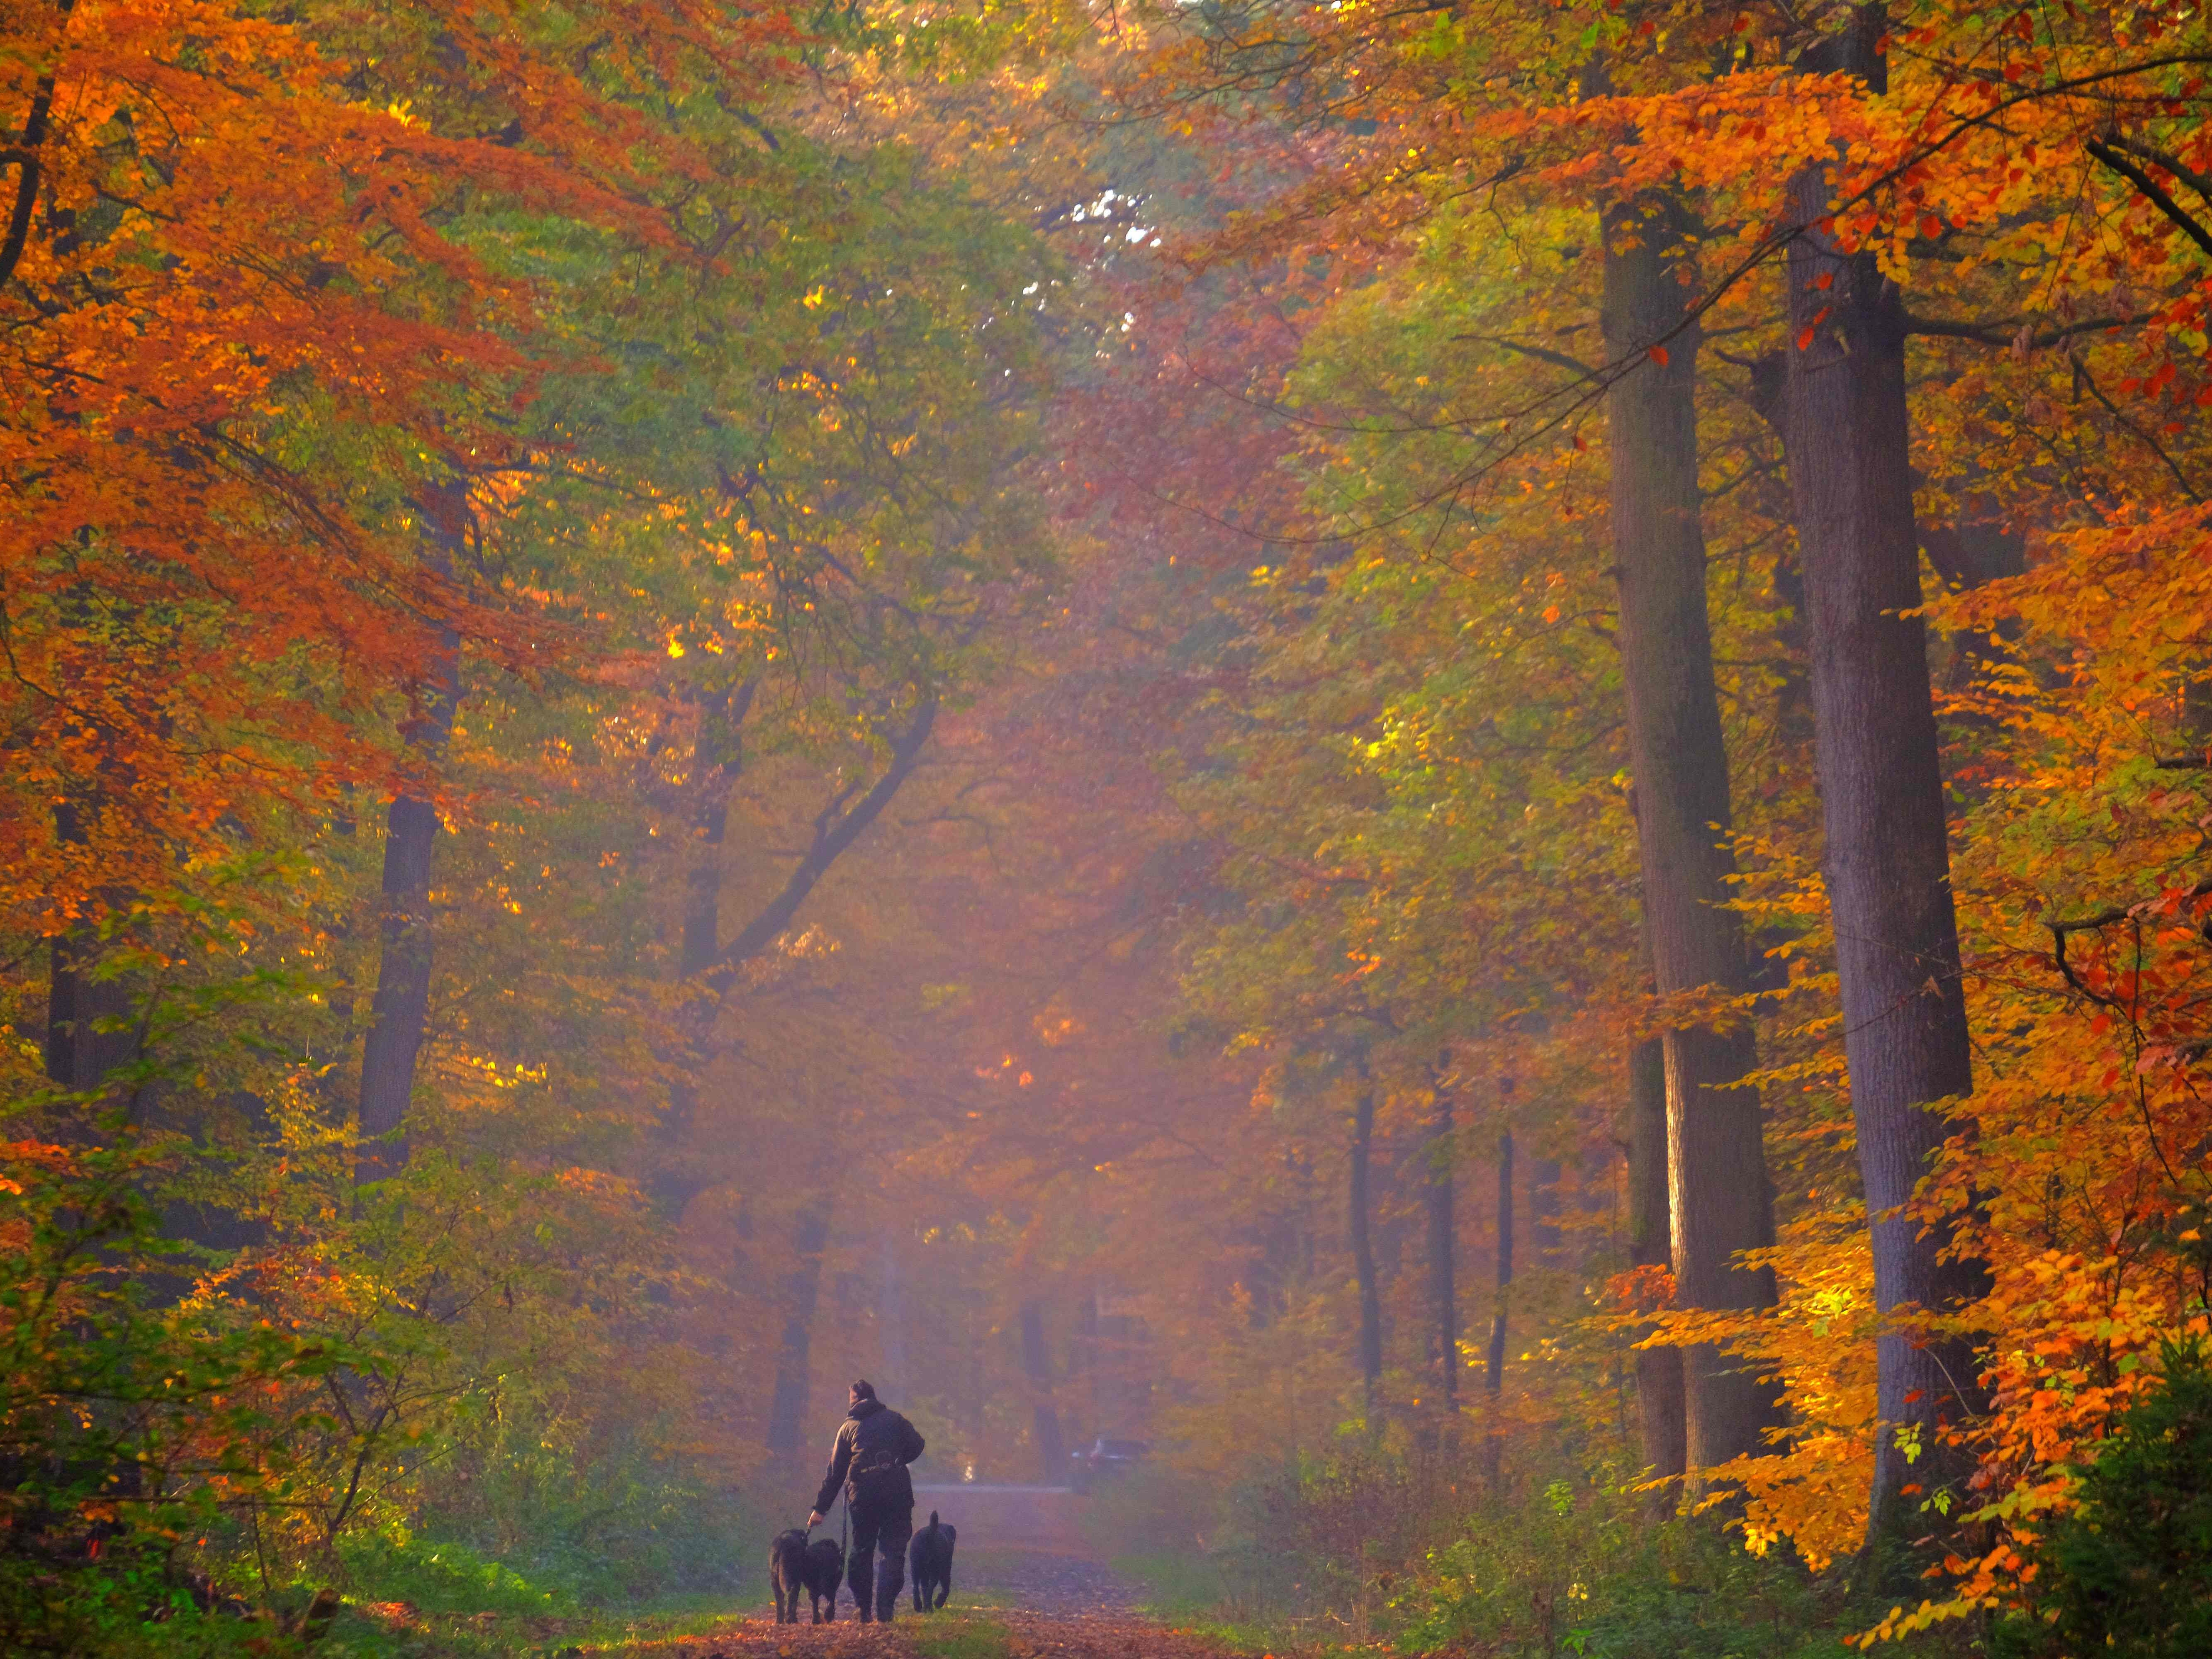 A pedestrian walks his dogs in an autumnally colored forest in Cuxhaven, Germany, on Nov. 7, 2018.